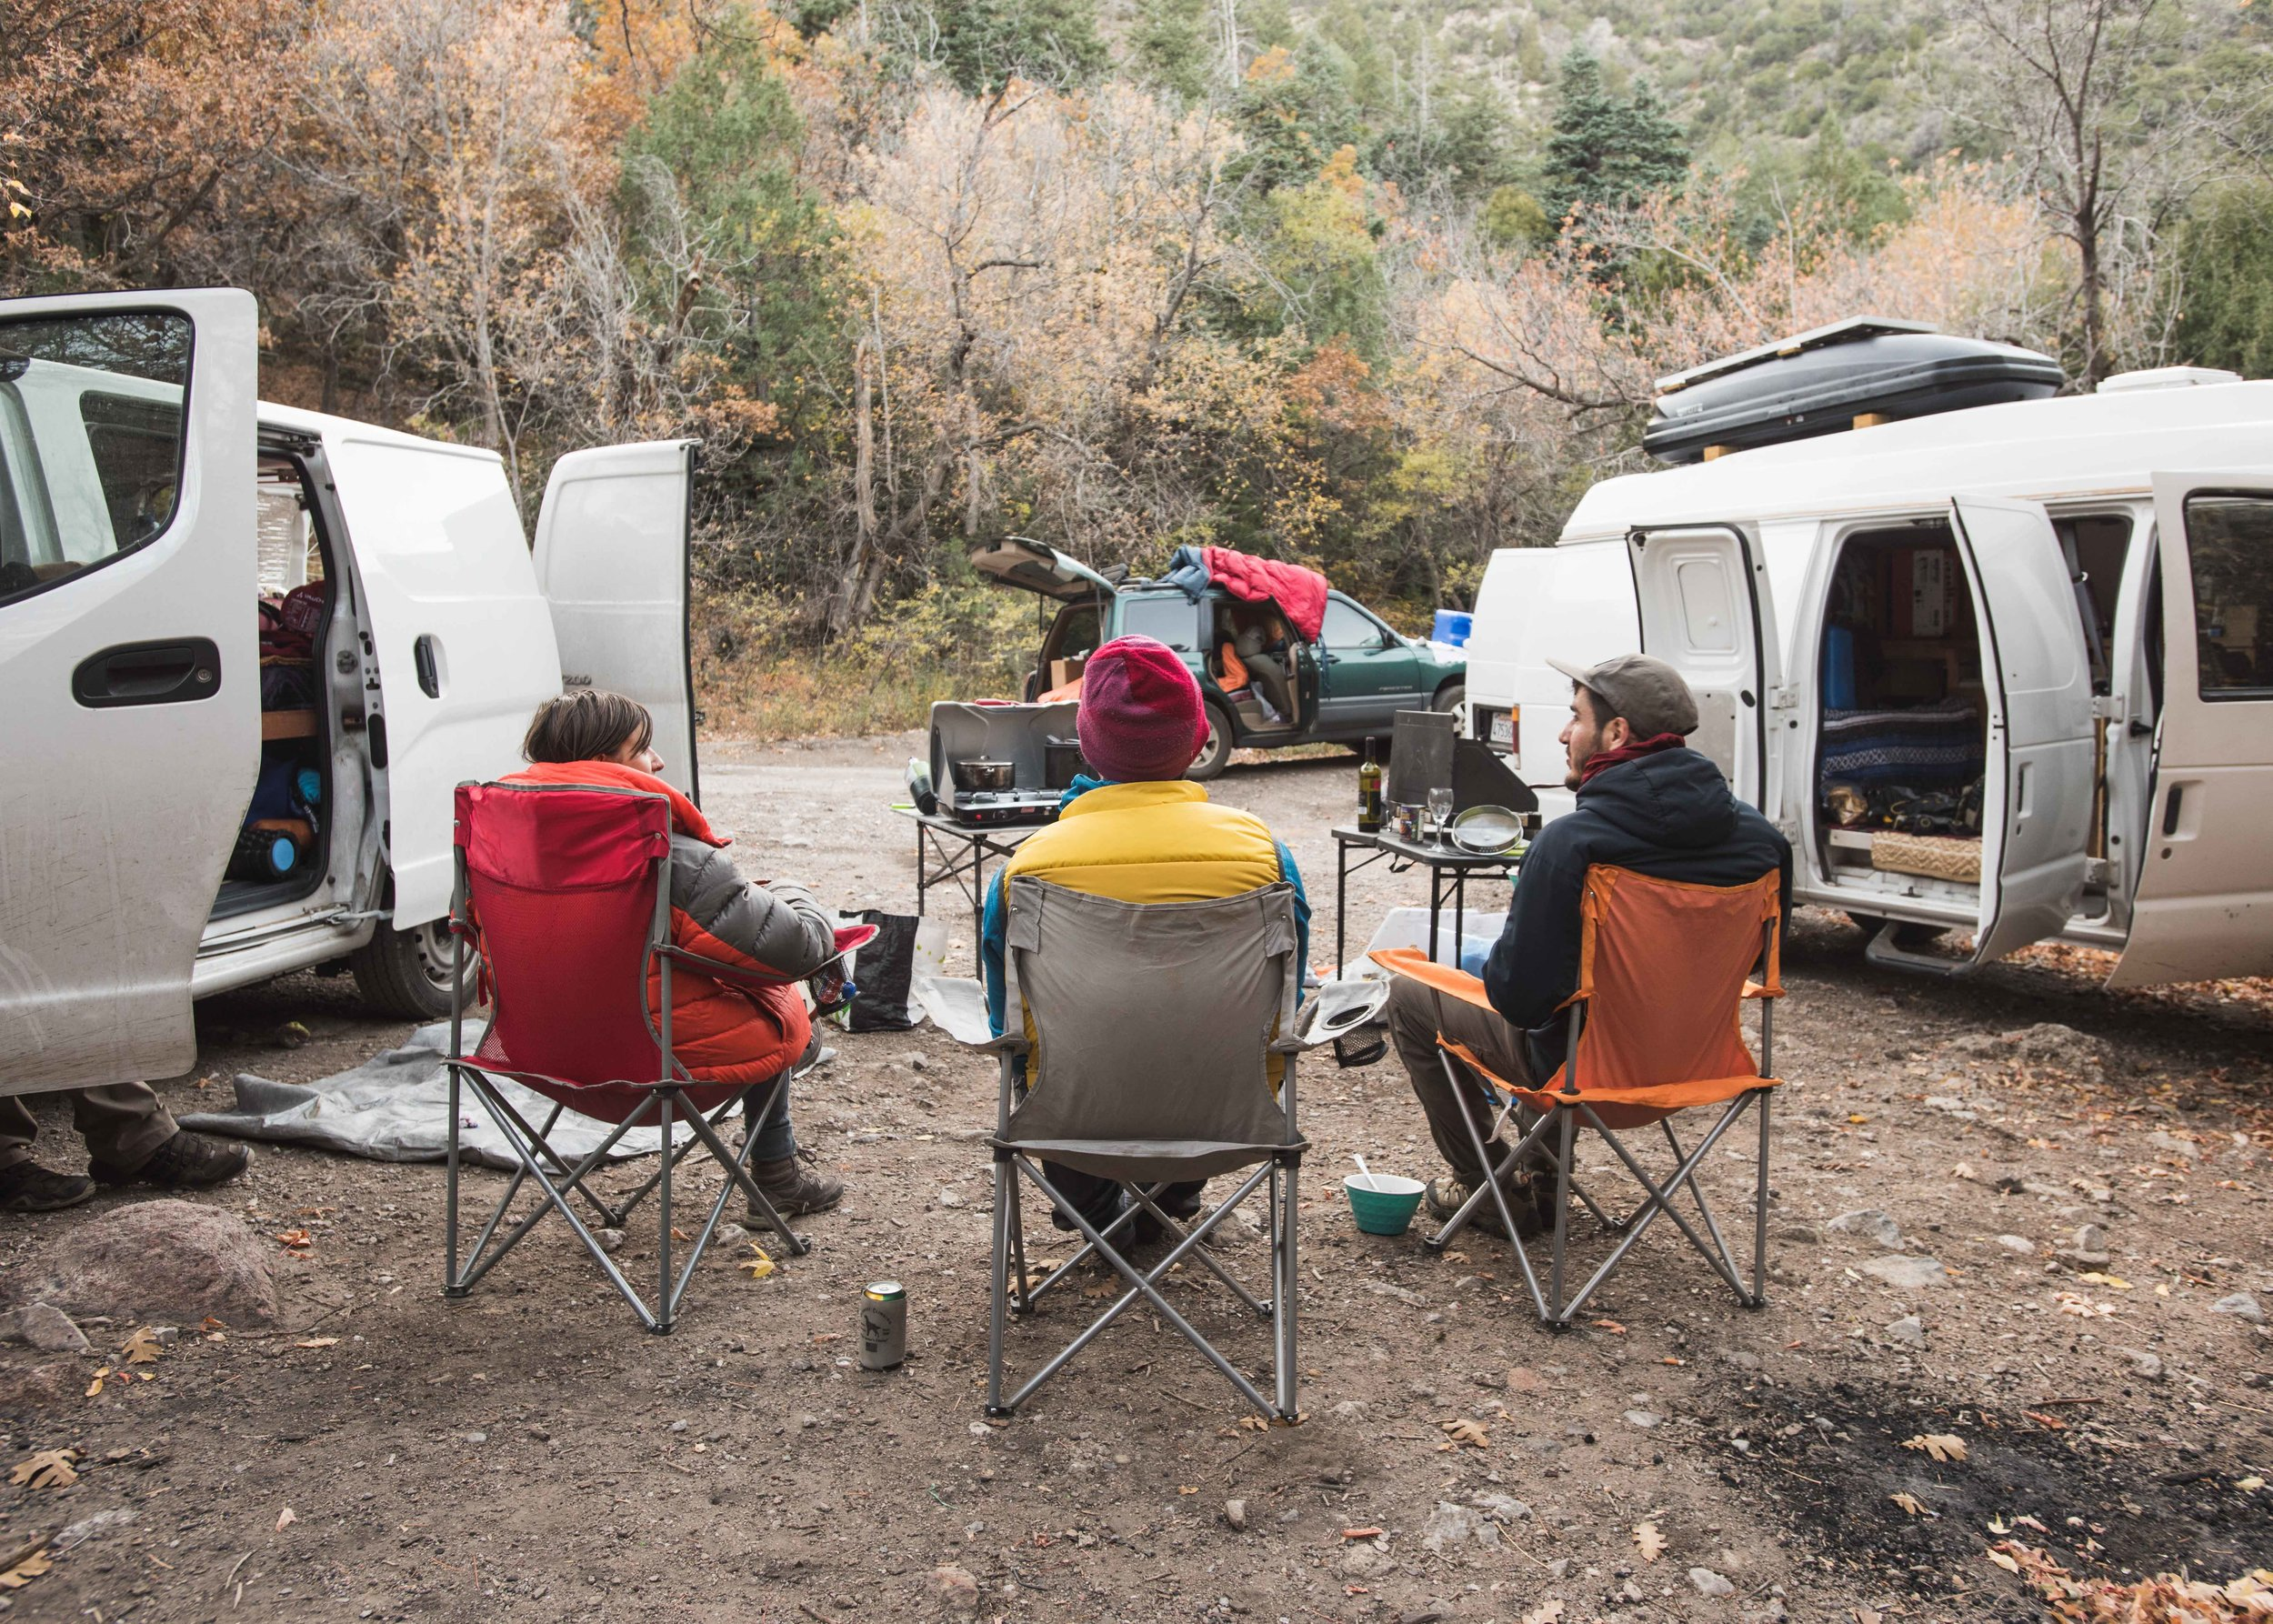 Car camping on the backside of the Sandias